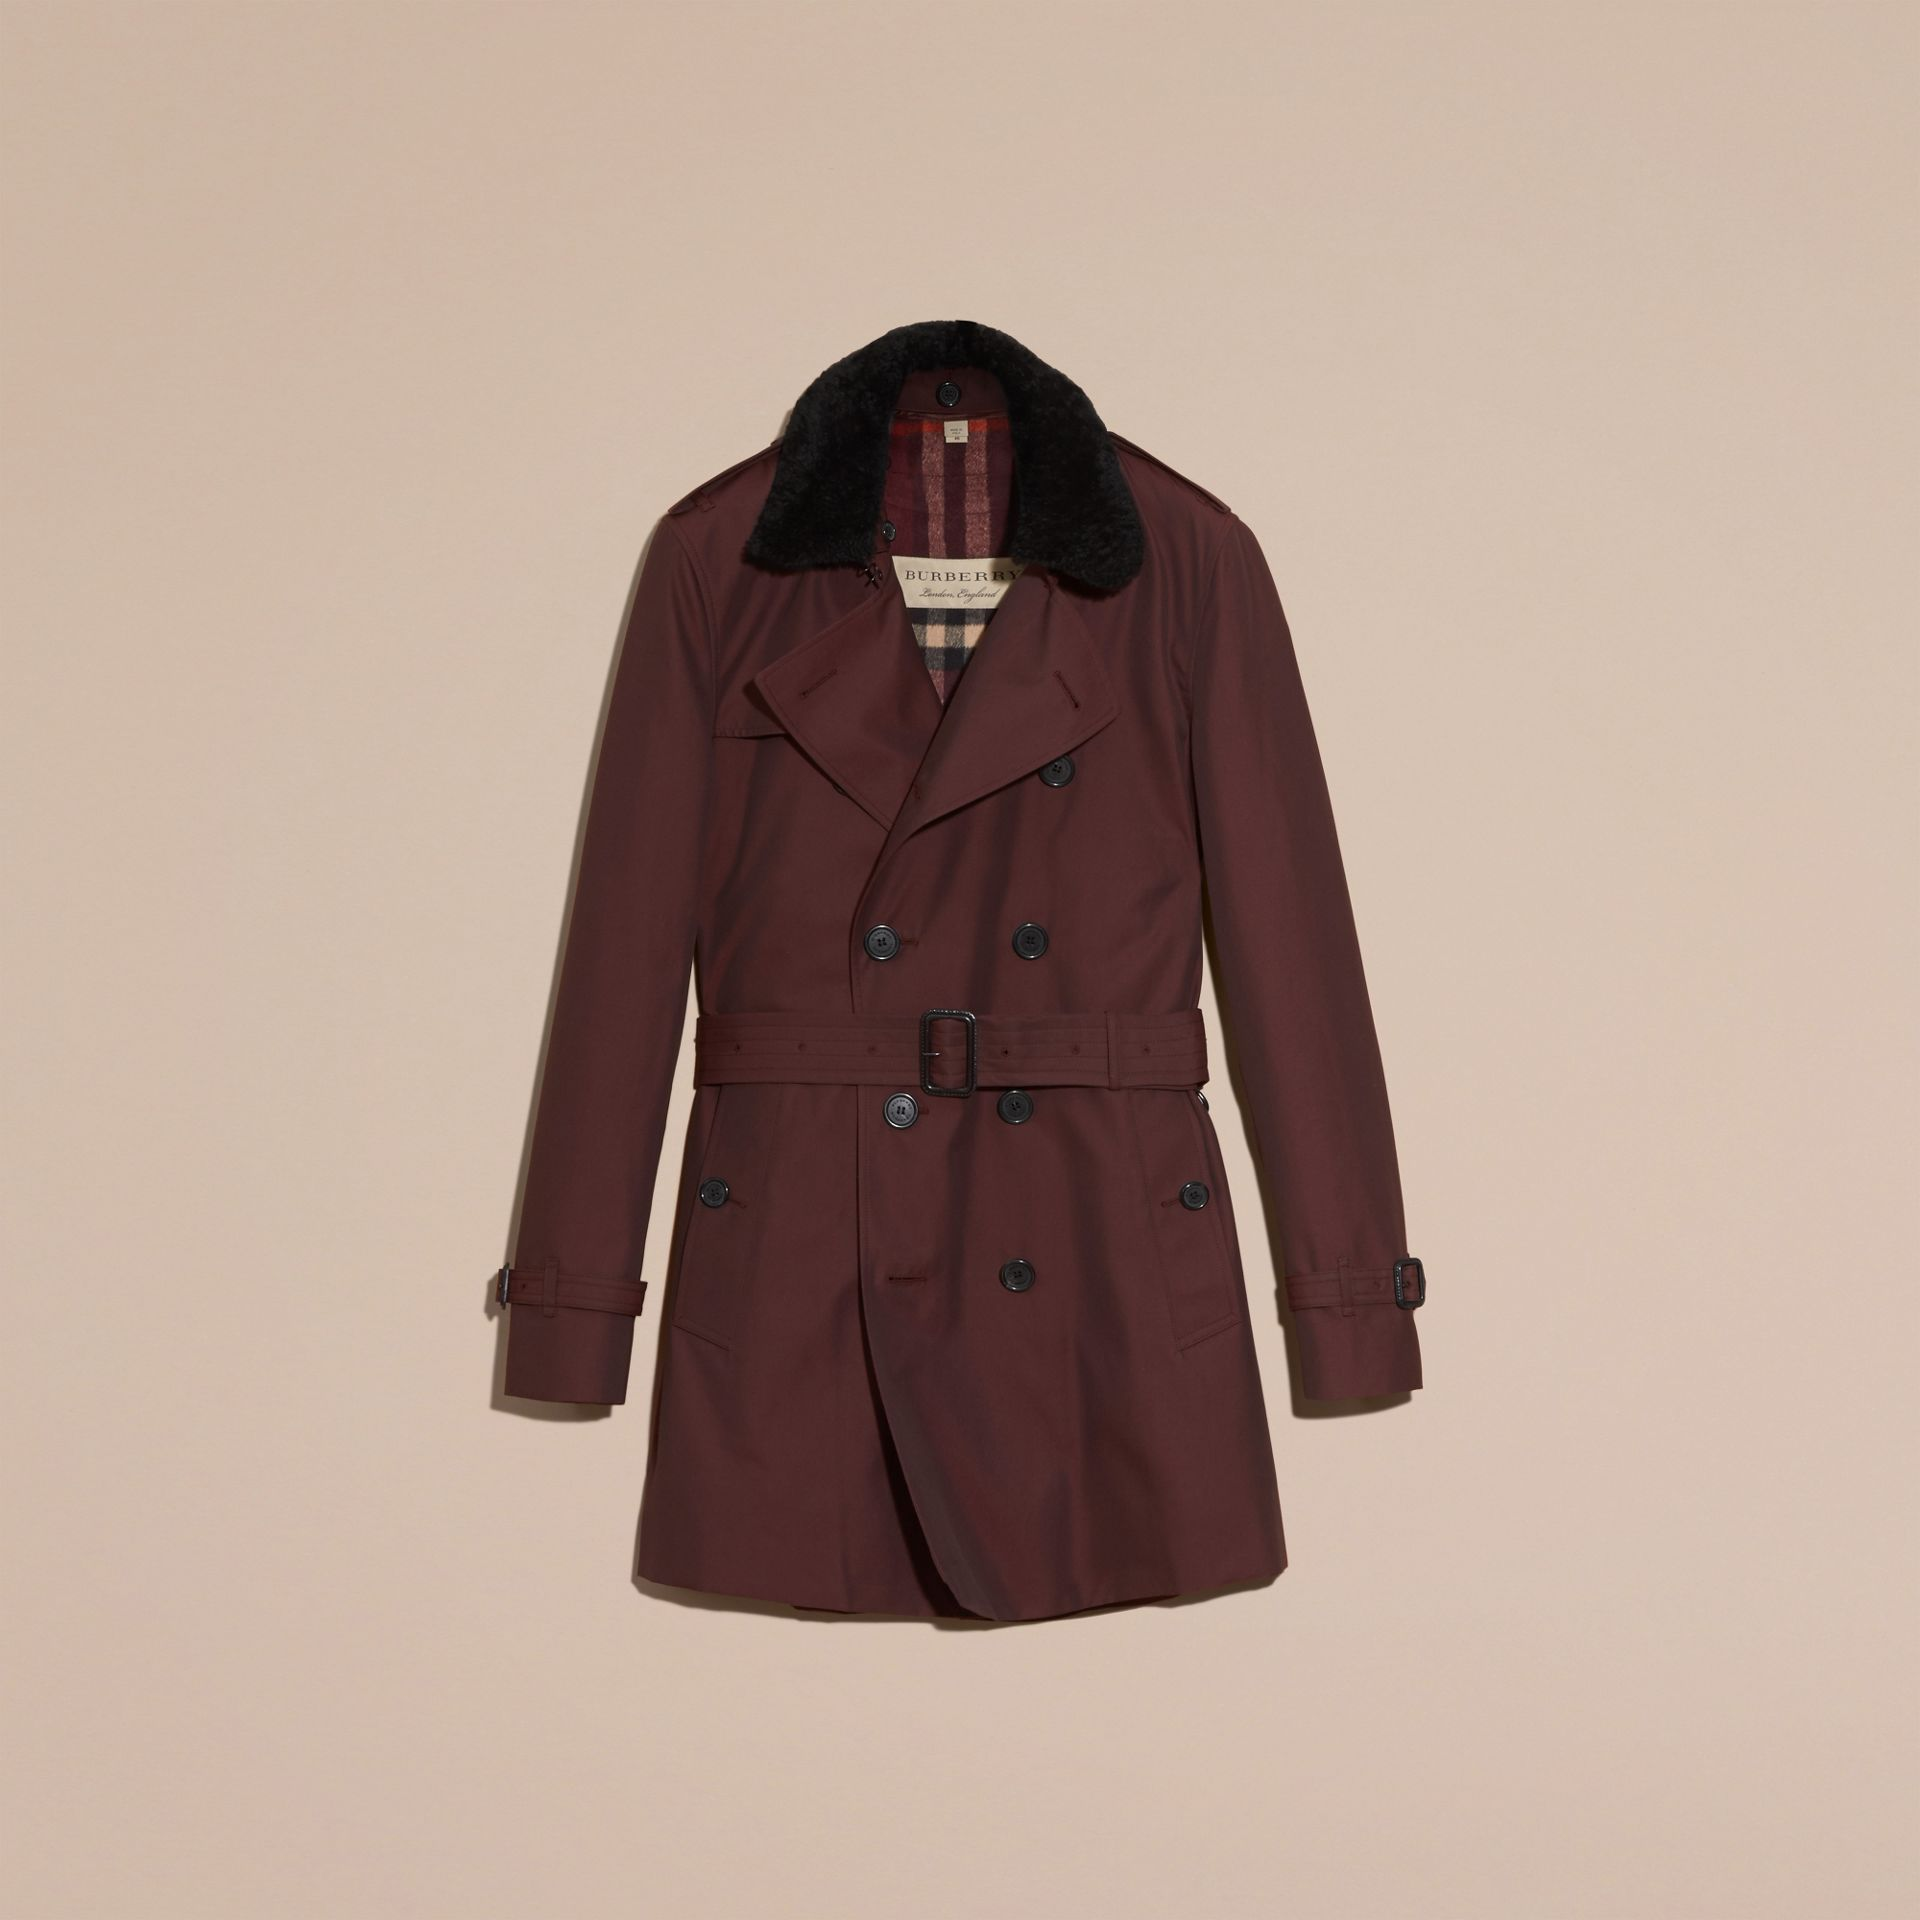 Mahogany red Detachable Shearling Topcollar Cotton Gabardine Trench Coat with Warmer Mahogany Red - gallery image 4